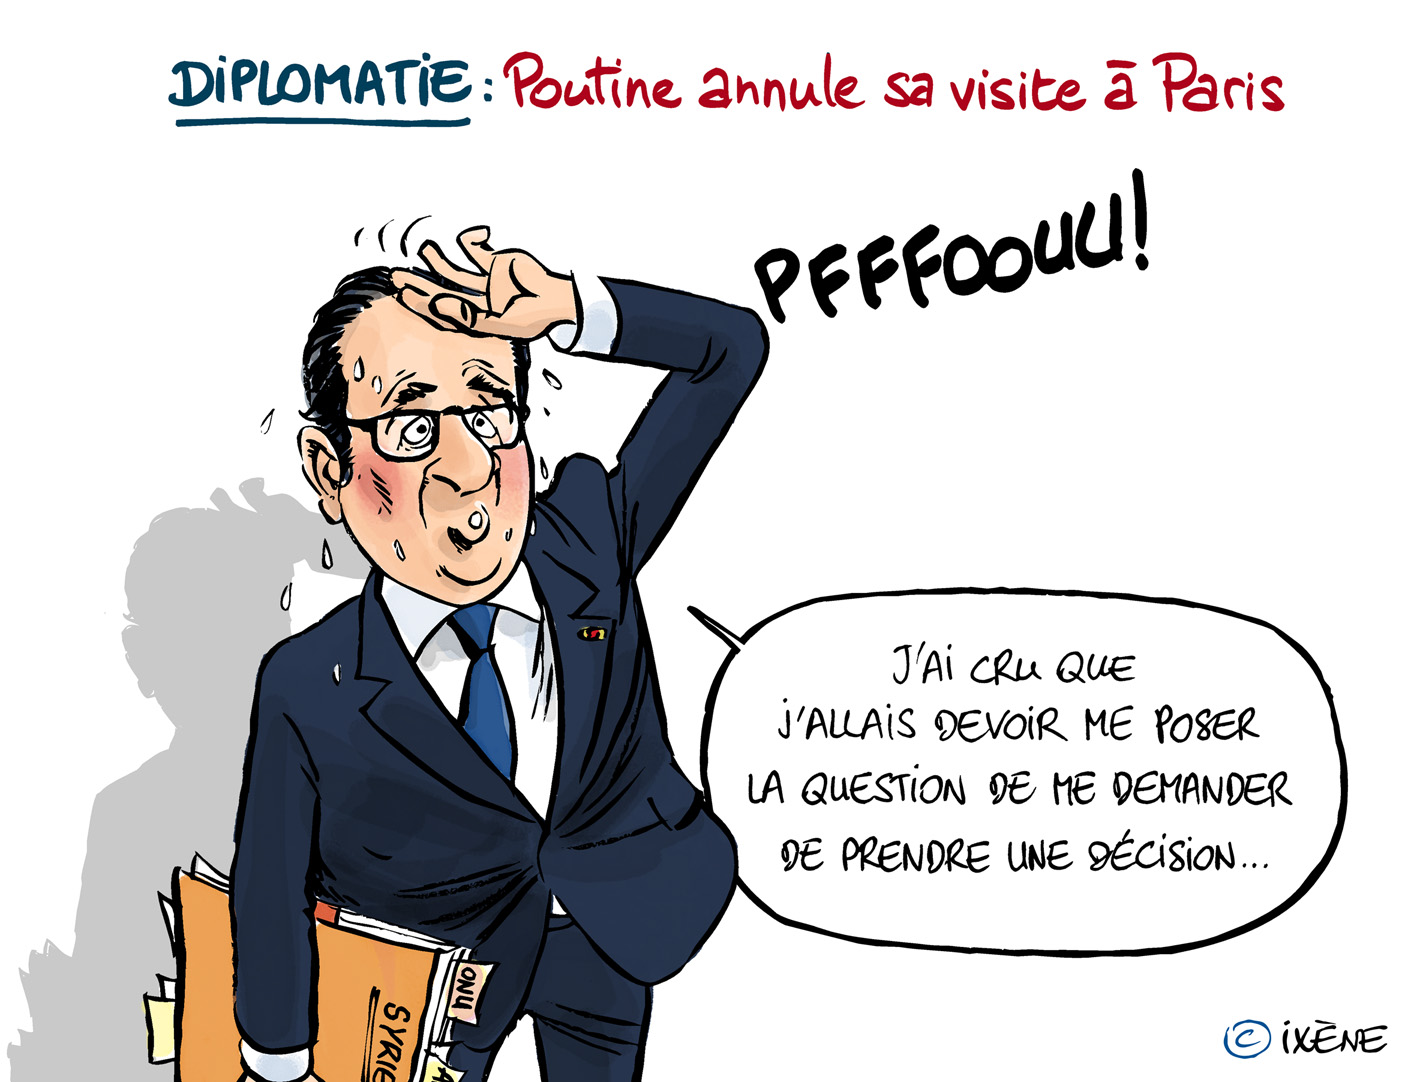 ixene-20161011-hollande-vs-poutine